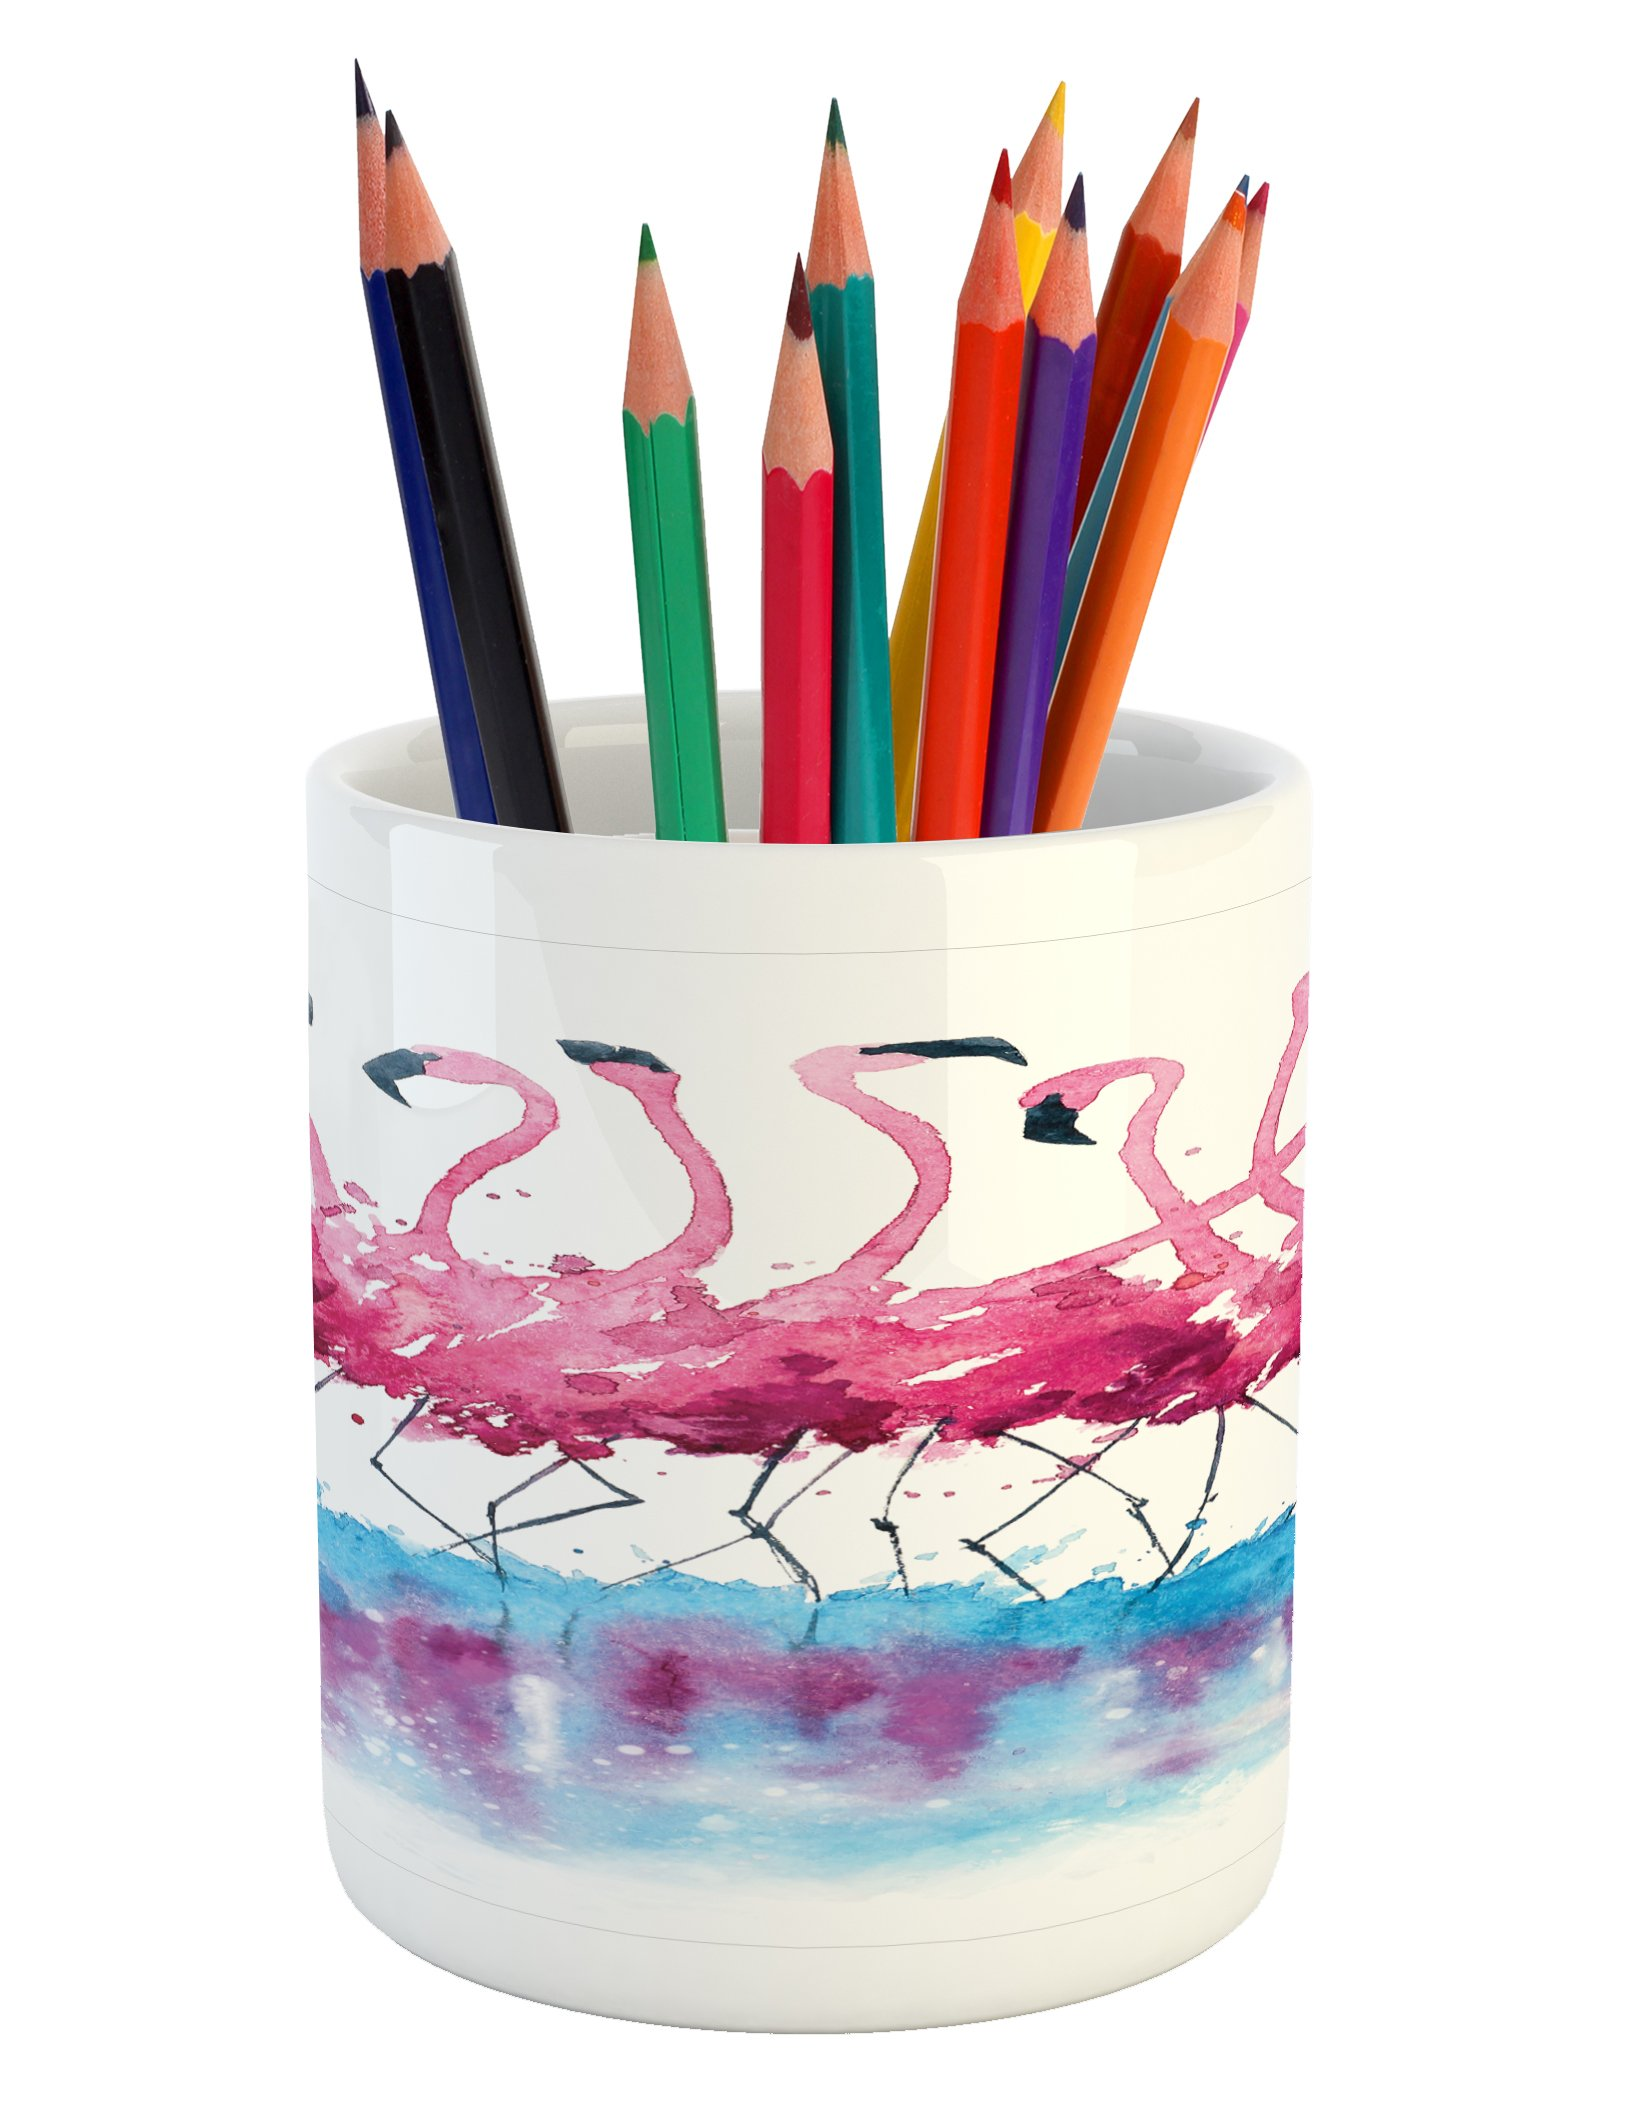 Ambesonne Animal Pencil Pen Holder, Flamingos Love Birds Feather Romance Brushstroke Splash Watercolor Effect, Printed Ceramic Pencil Pen Holder for Desk Office Accessory, Pink Blue Purple by Ambesonne (Image #1)